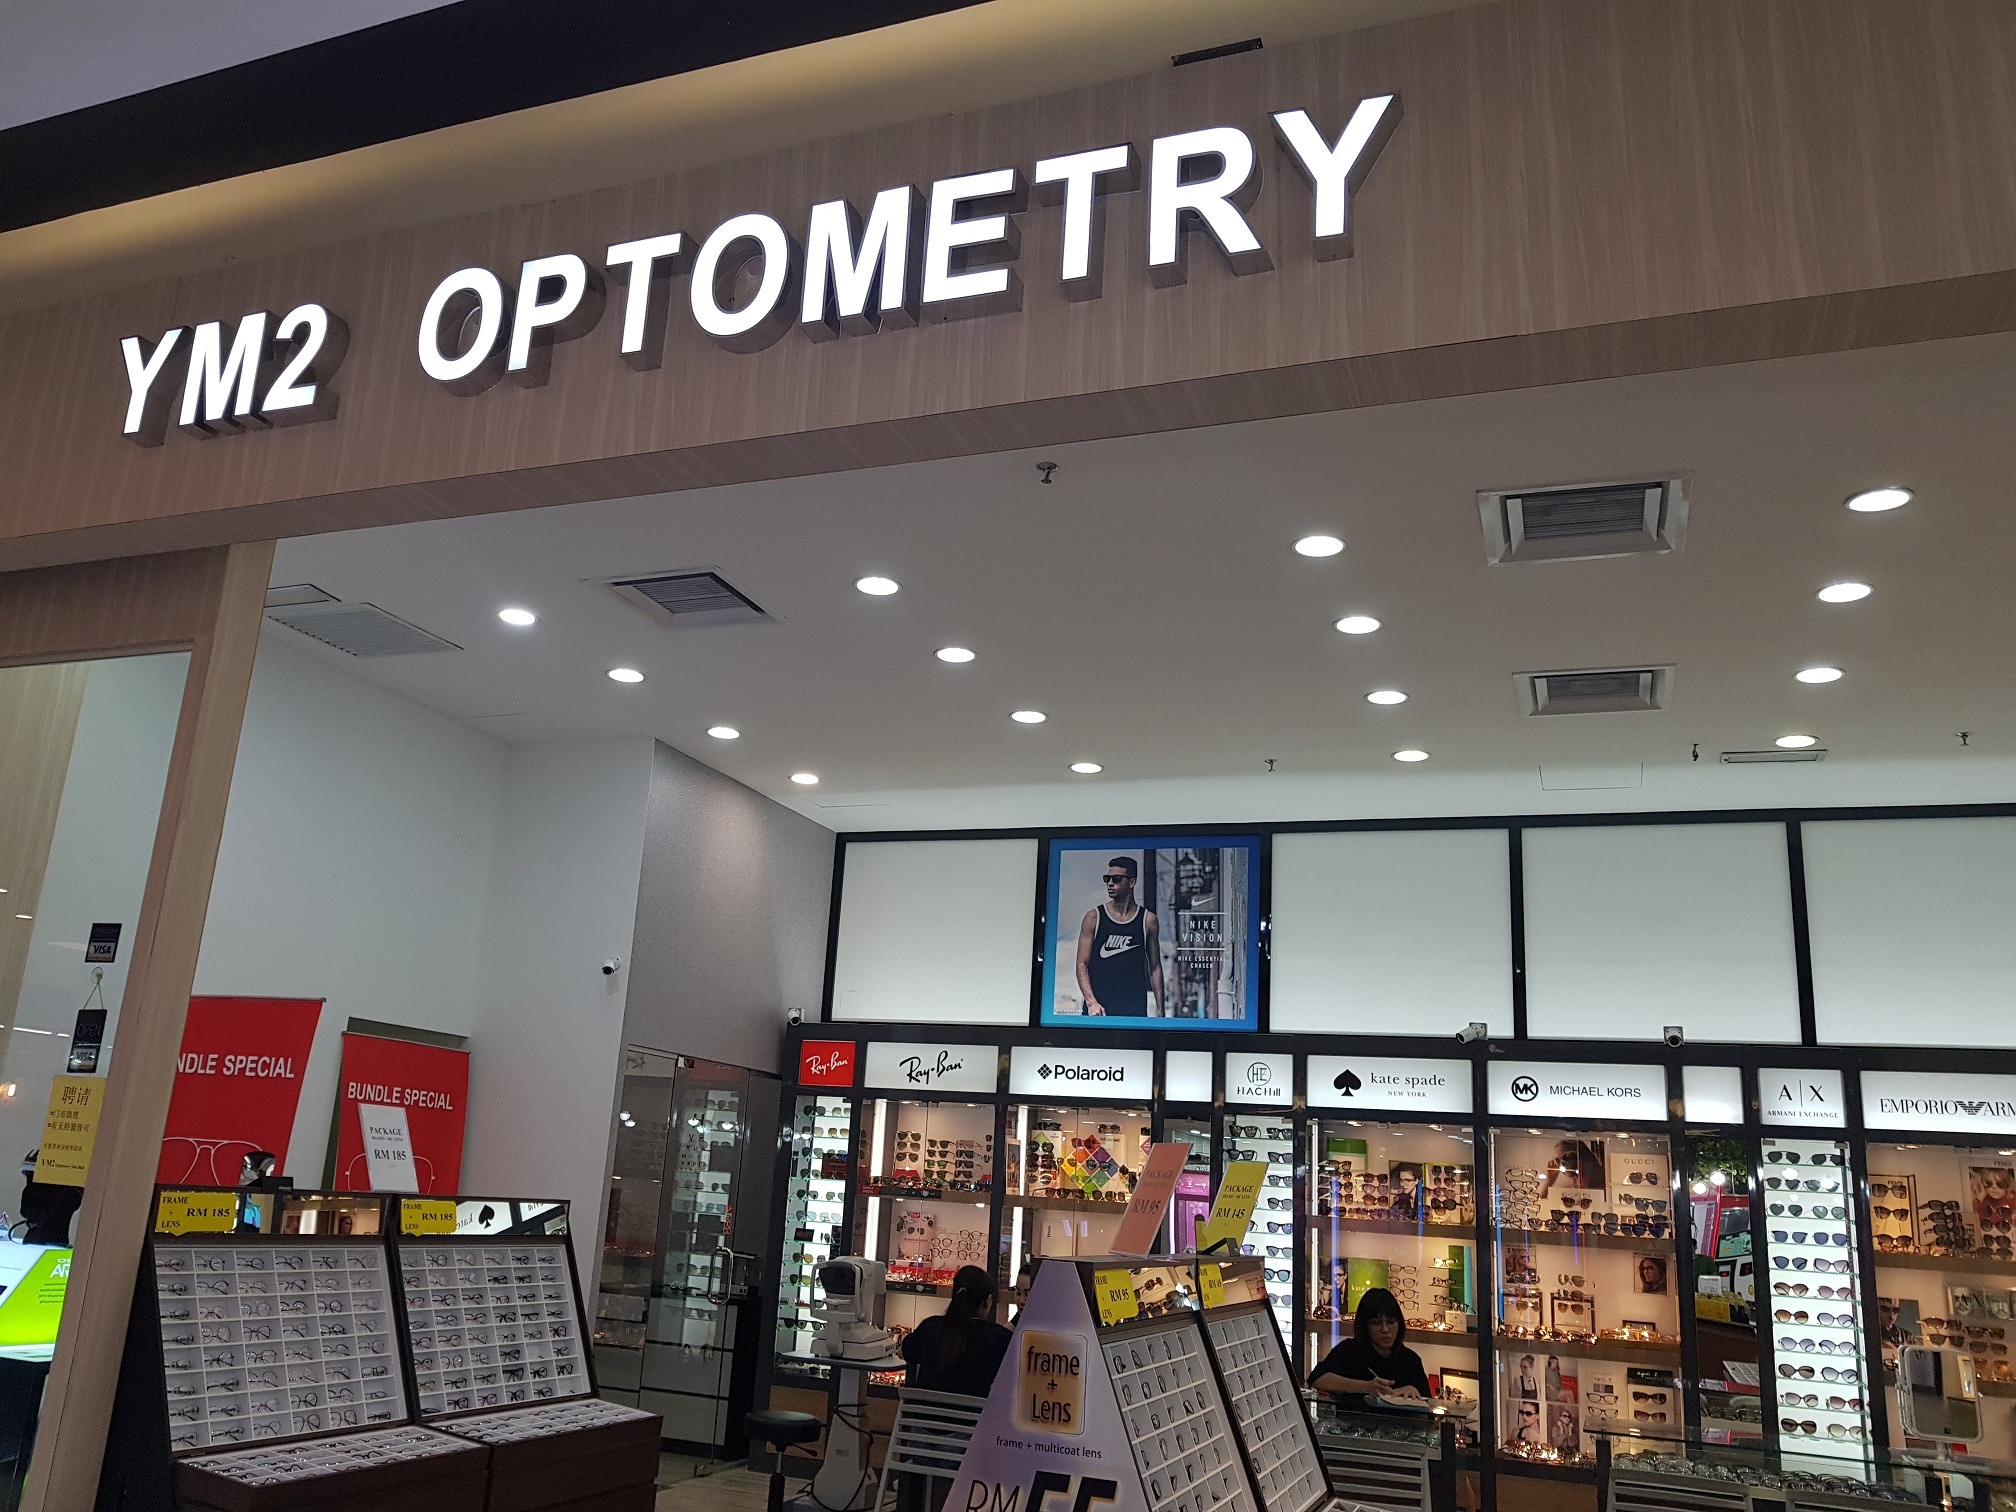 YM2 Optometry S/B